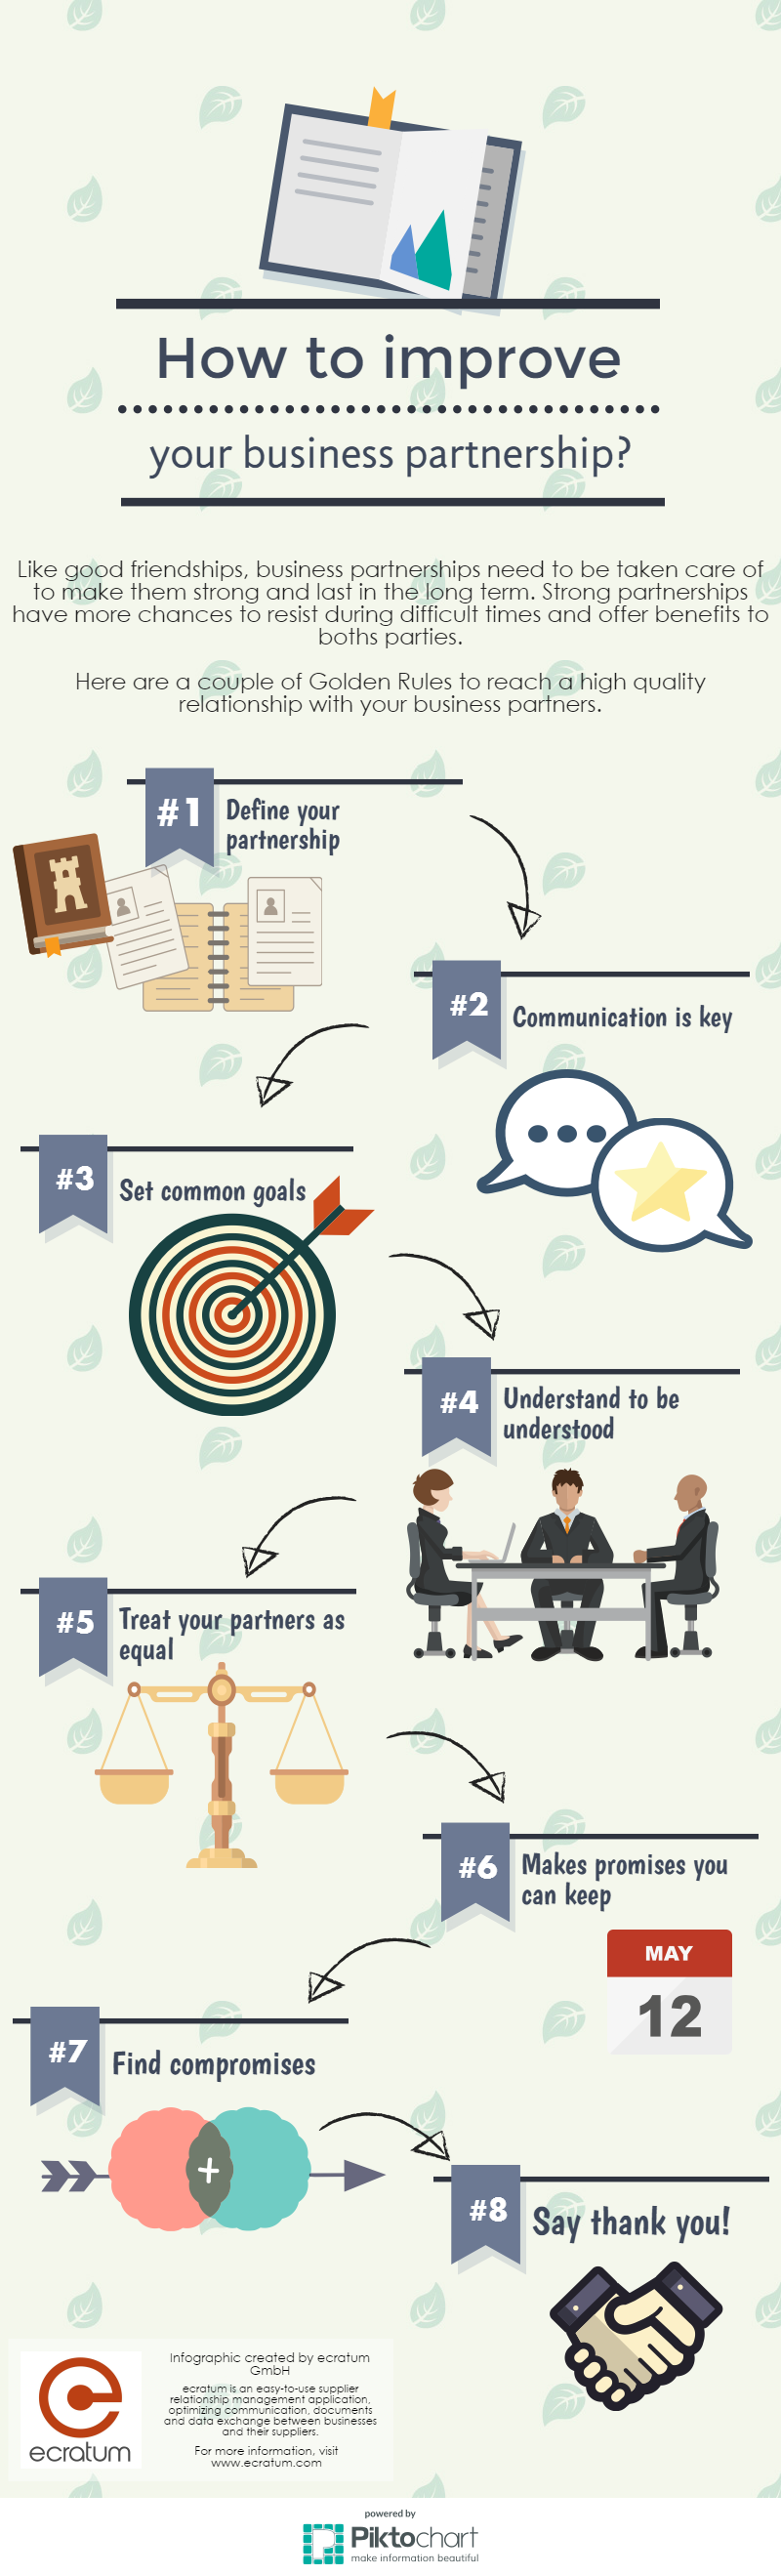 How To Improve Your Business Partnership? #infographic